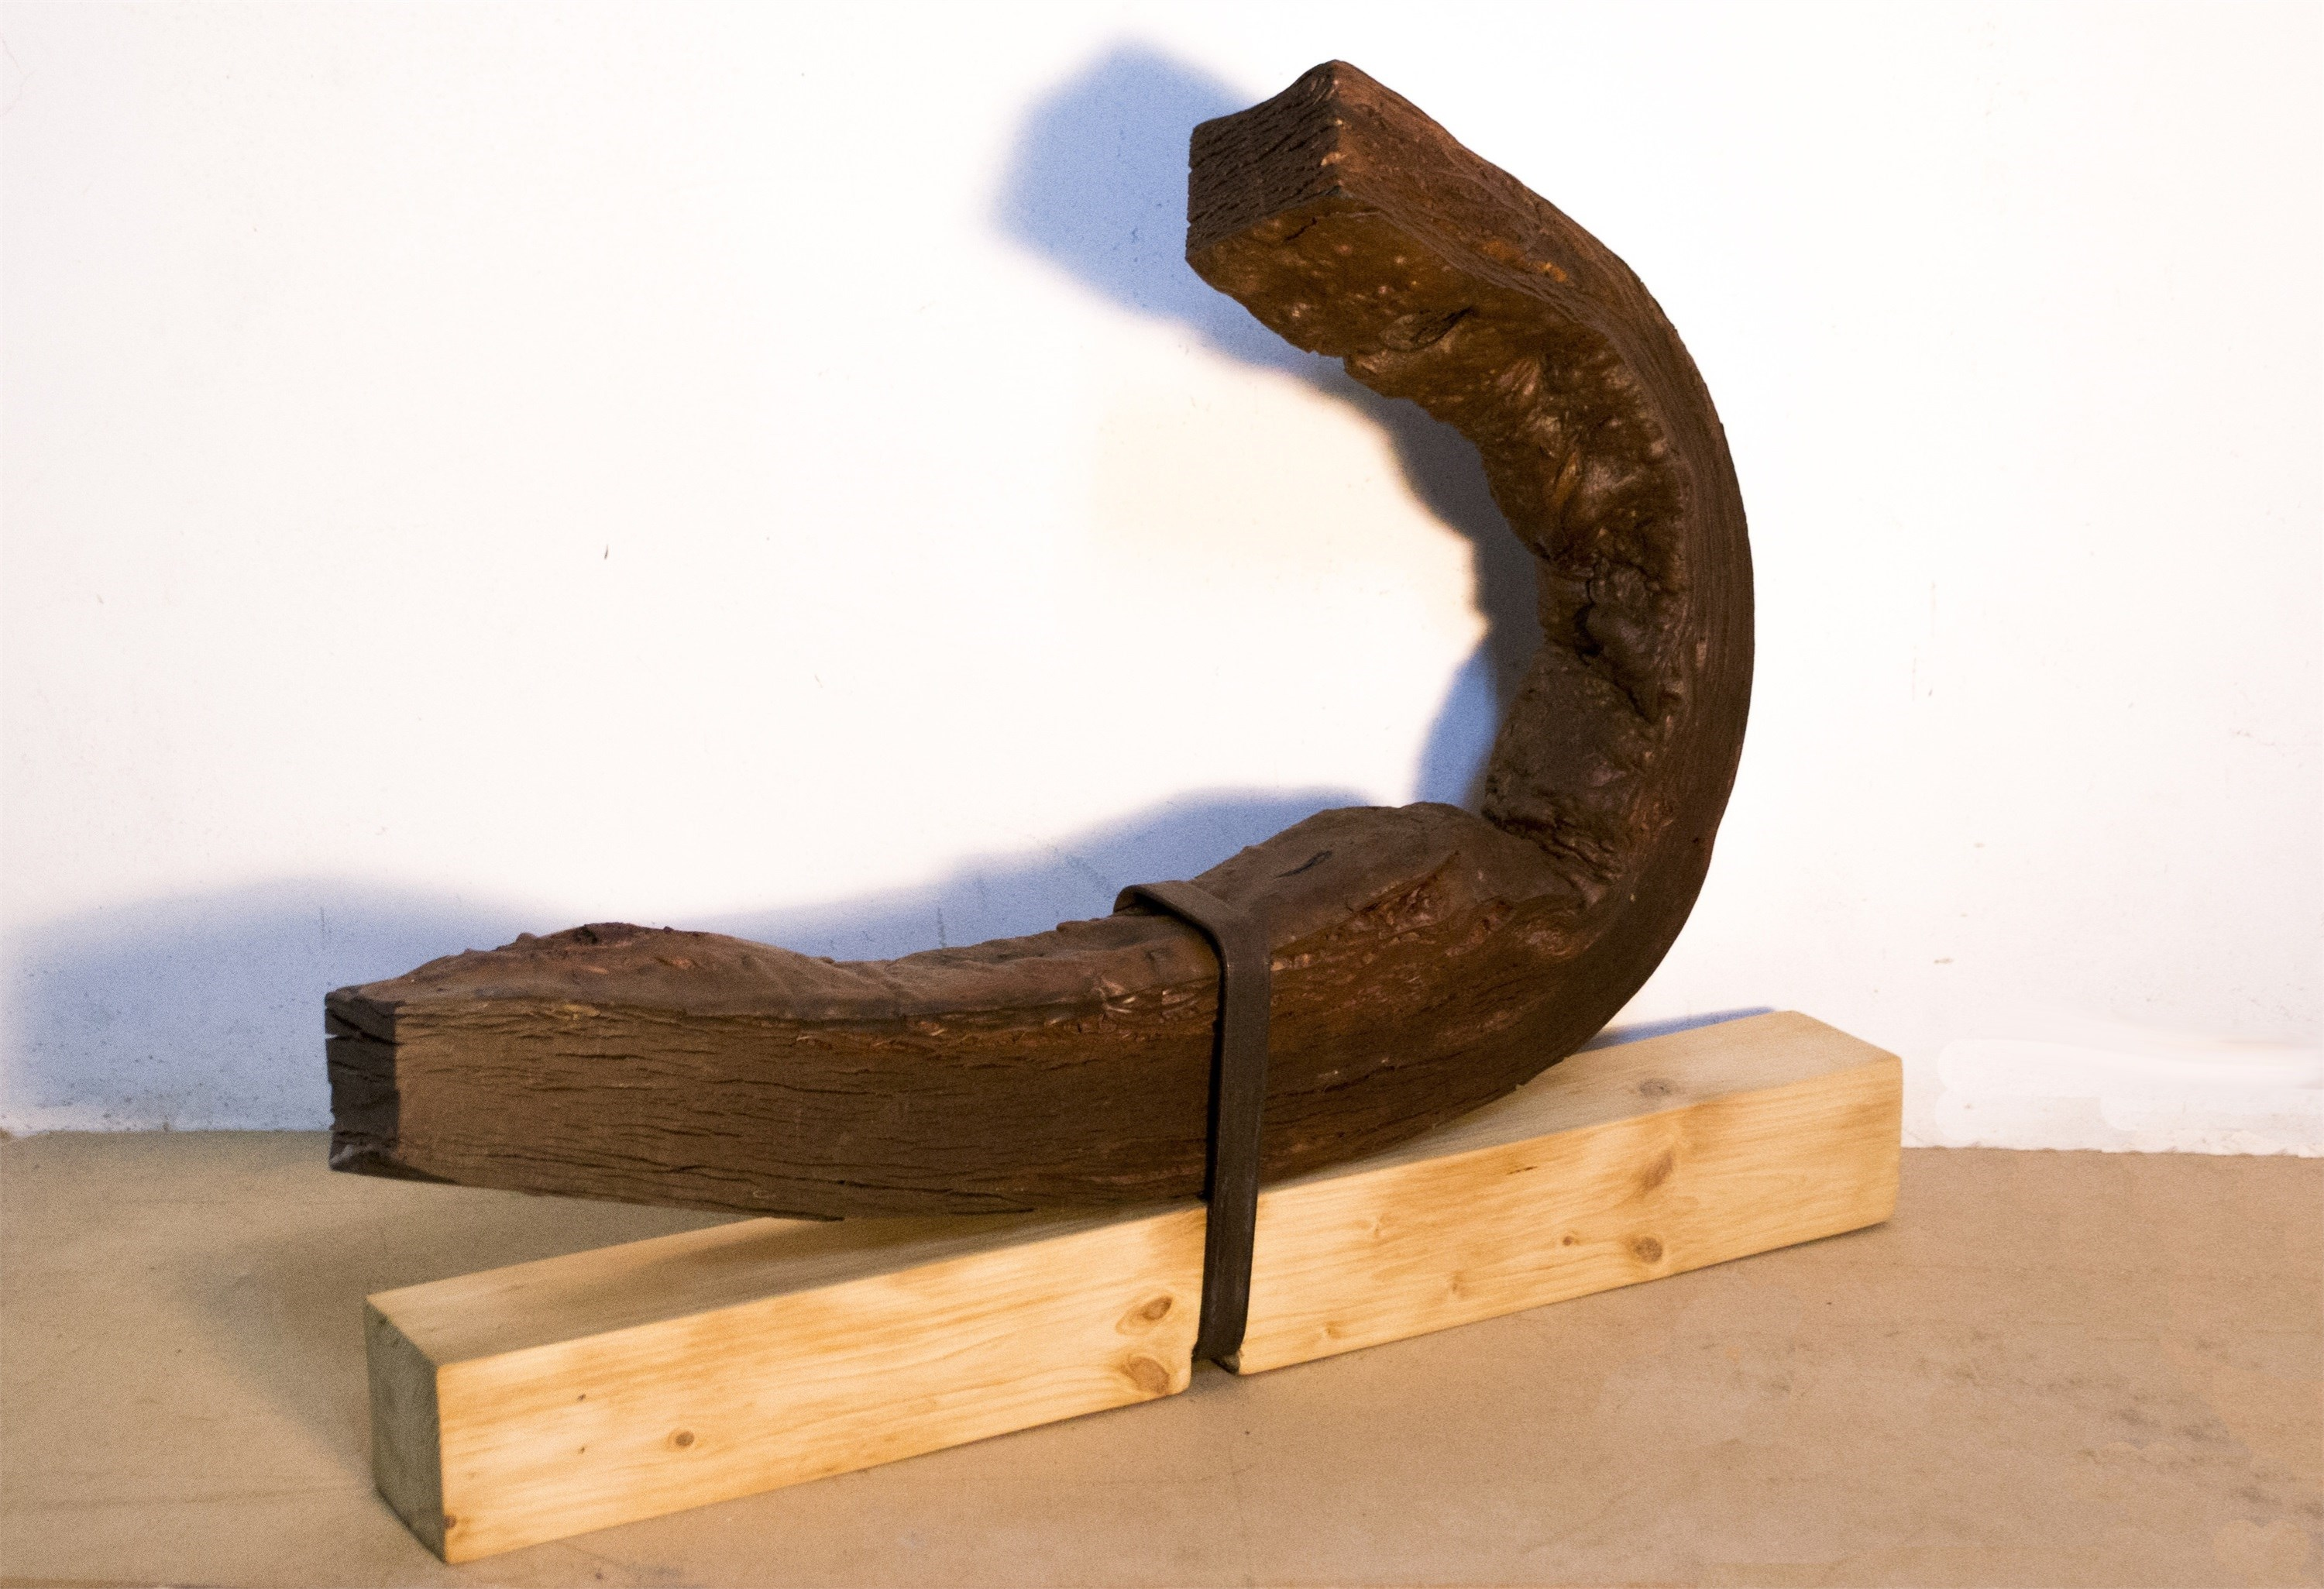 Resistência (do Corpo), original Abstract Metal Sculpture by Ana Almeida Pinto